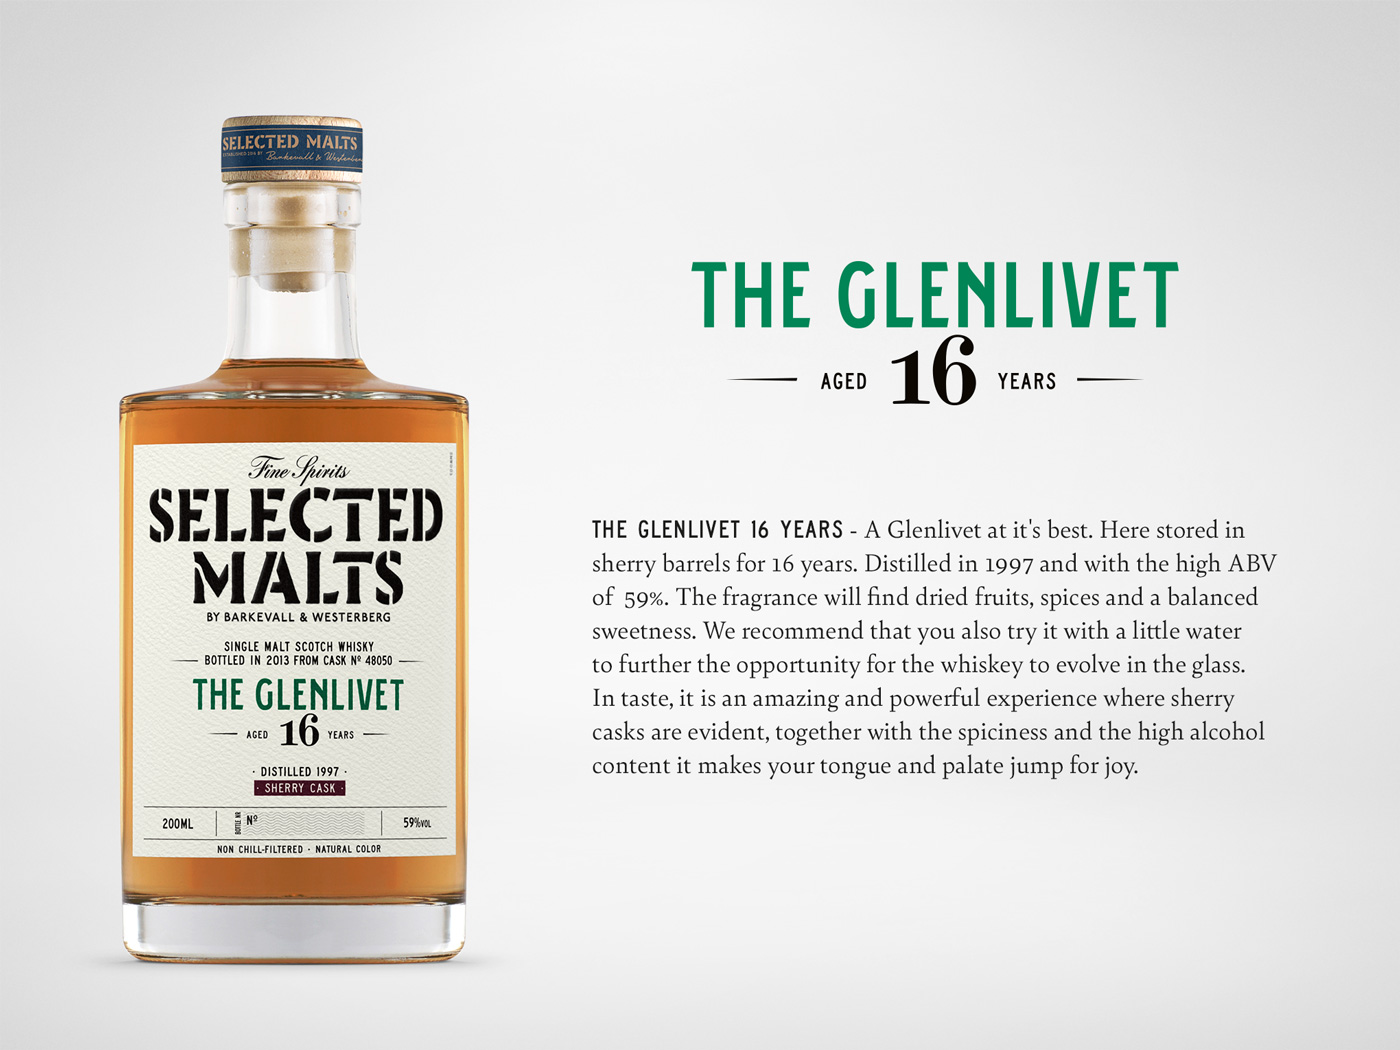 Selected Malts - The Glenlivet 16